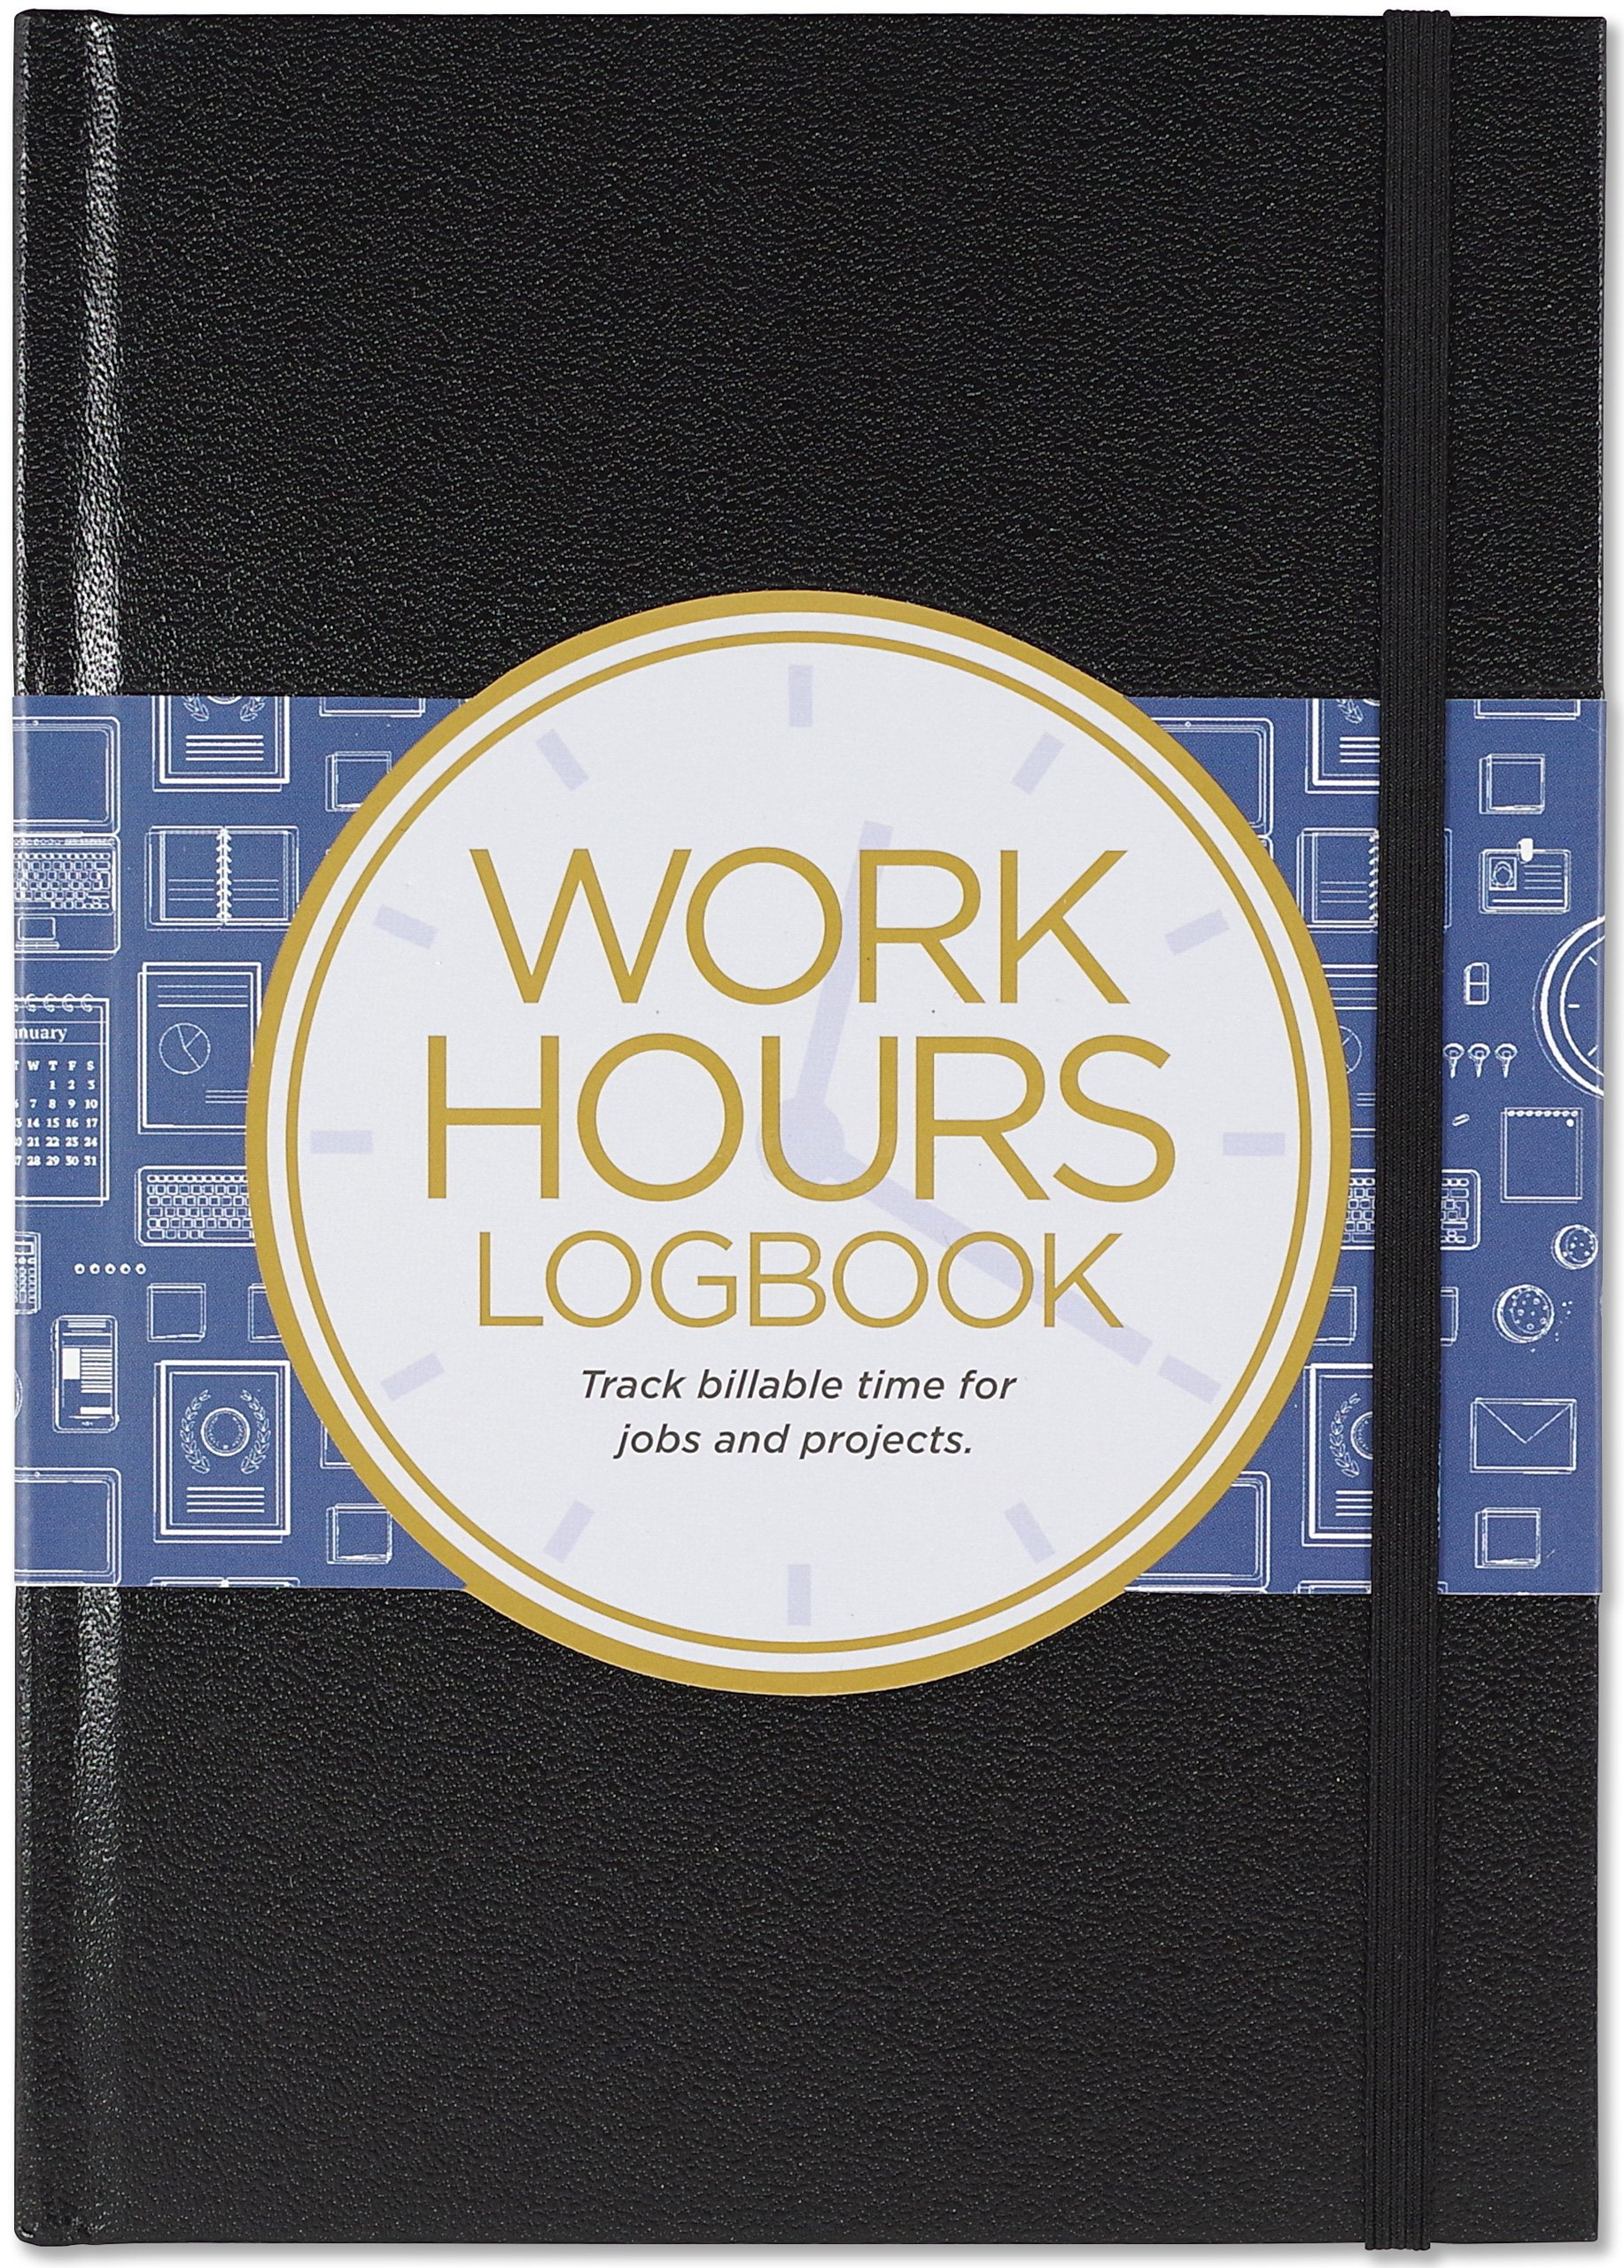 work hours logbook track billable time for jobs and projects inc